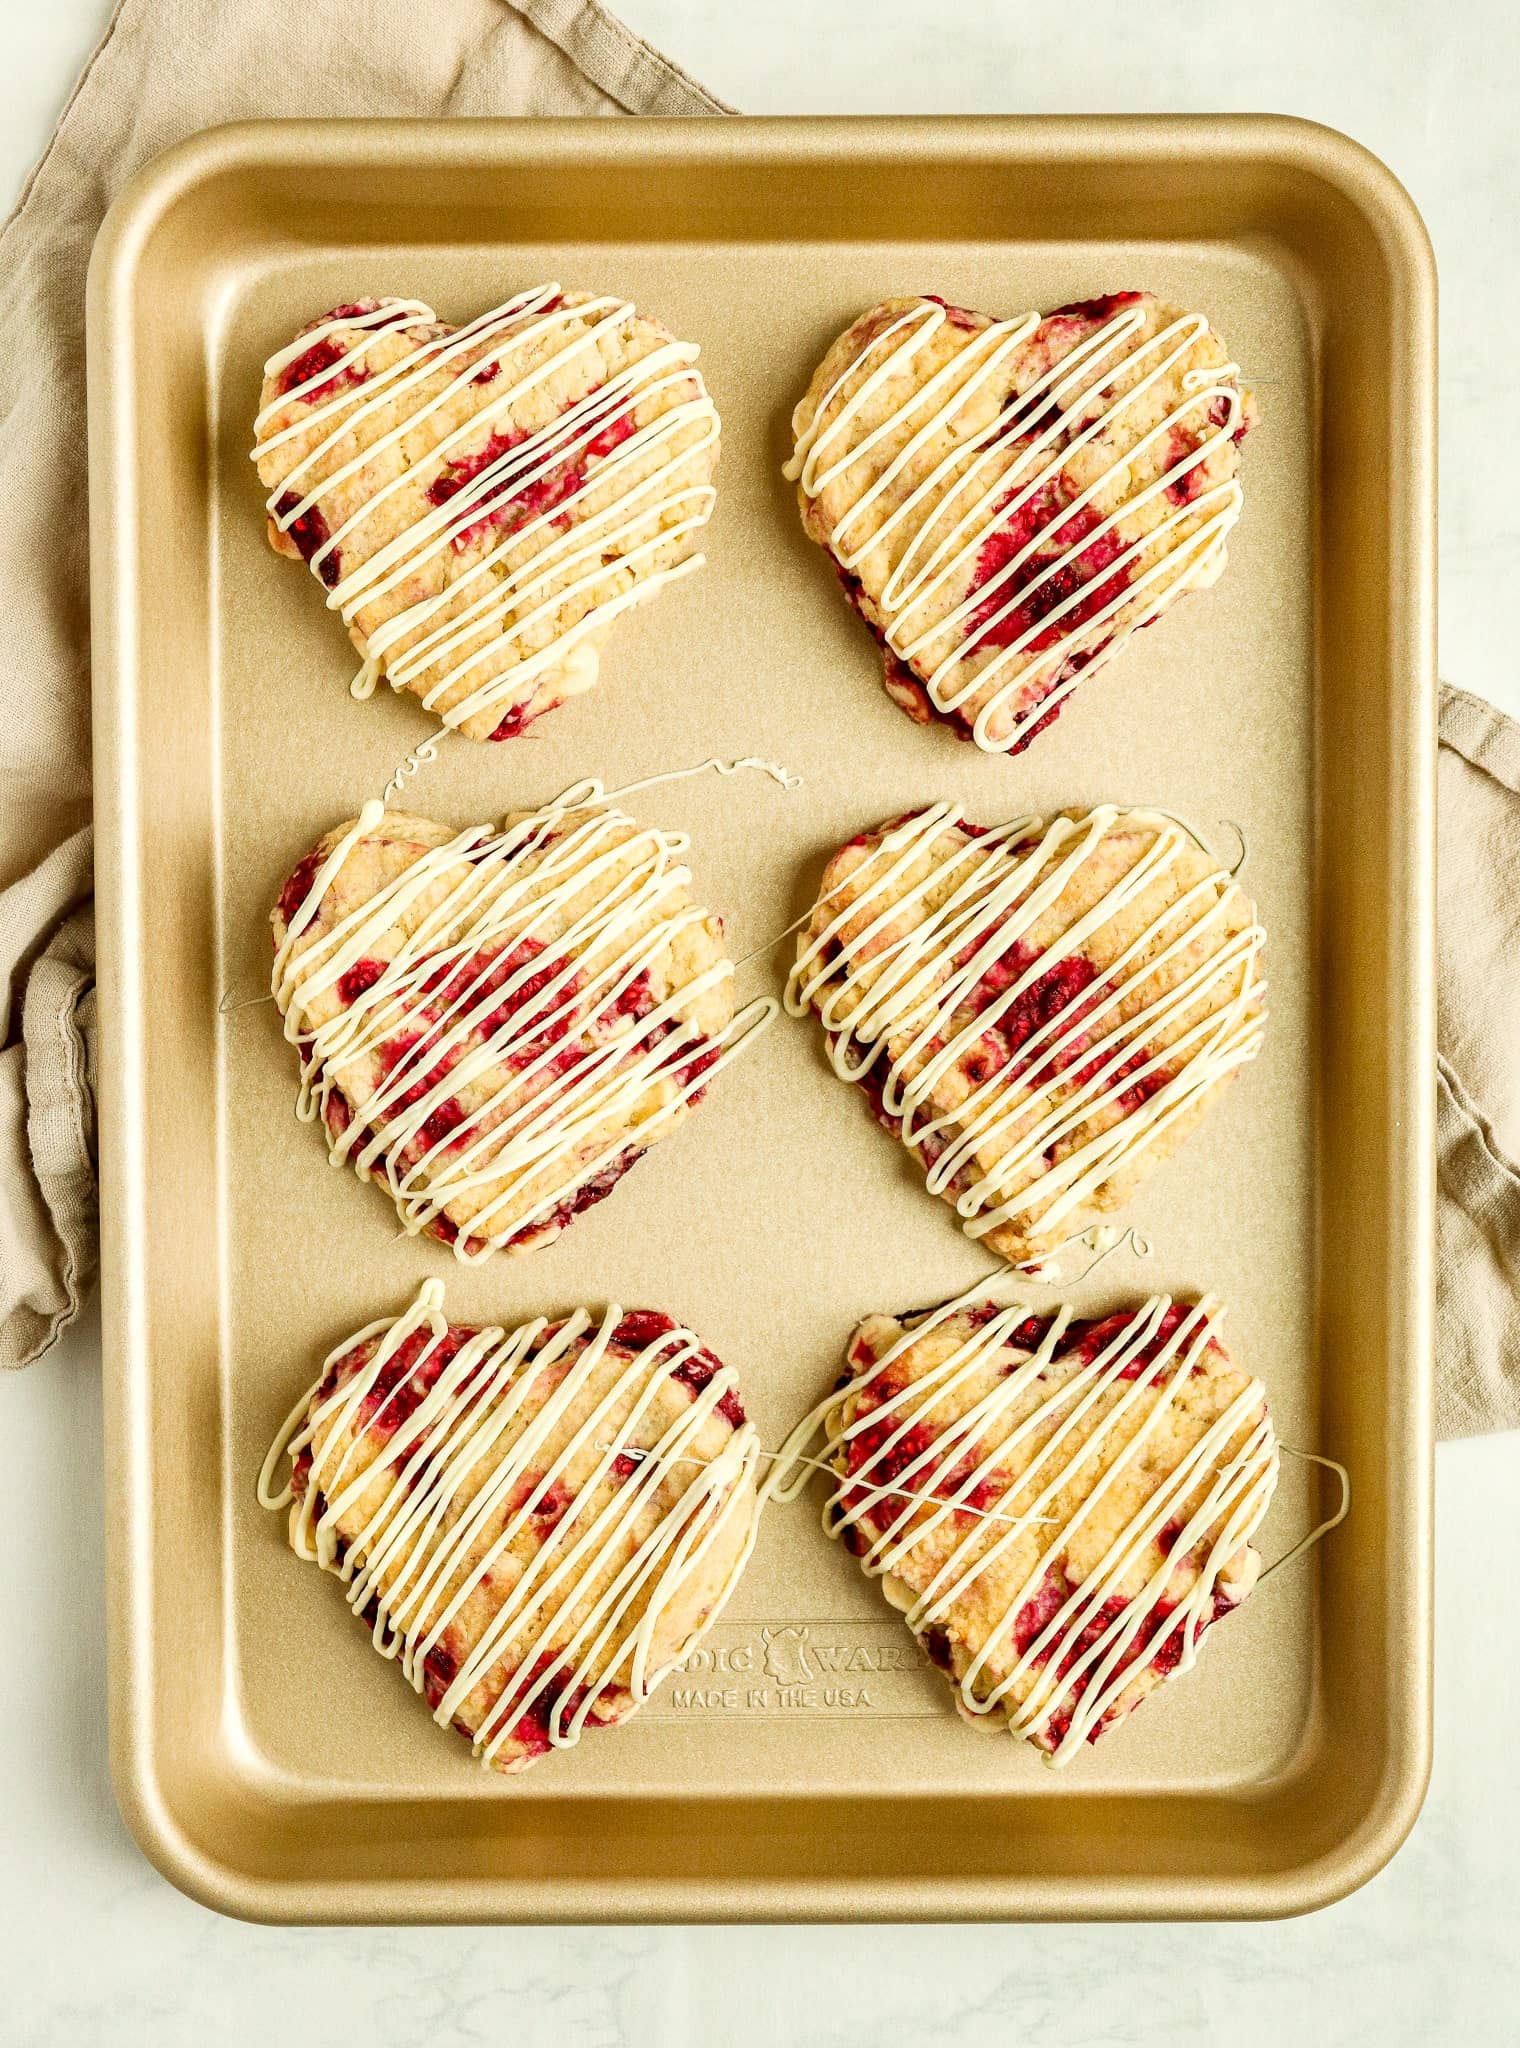 white chocolate raspberry scones with white chocolate drizzle on a gold baking pan